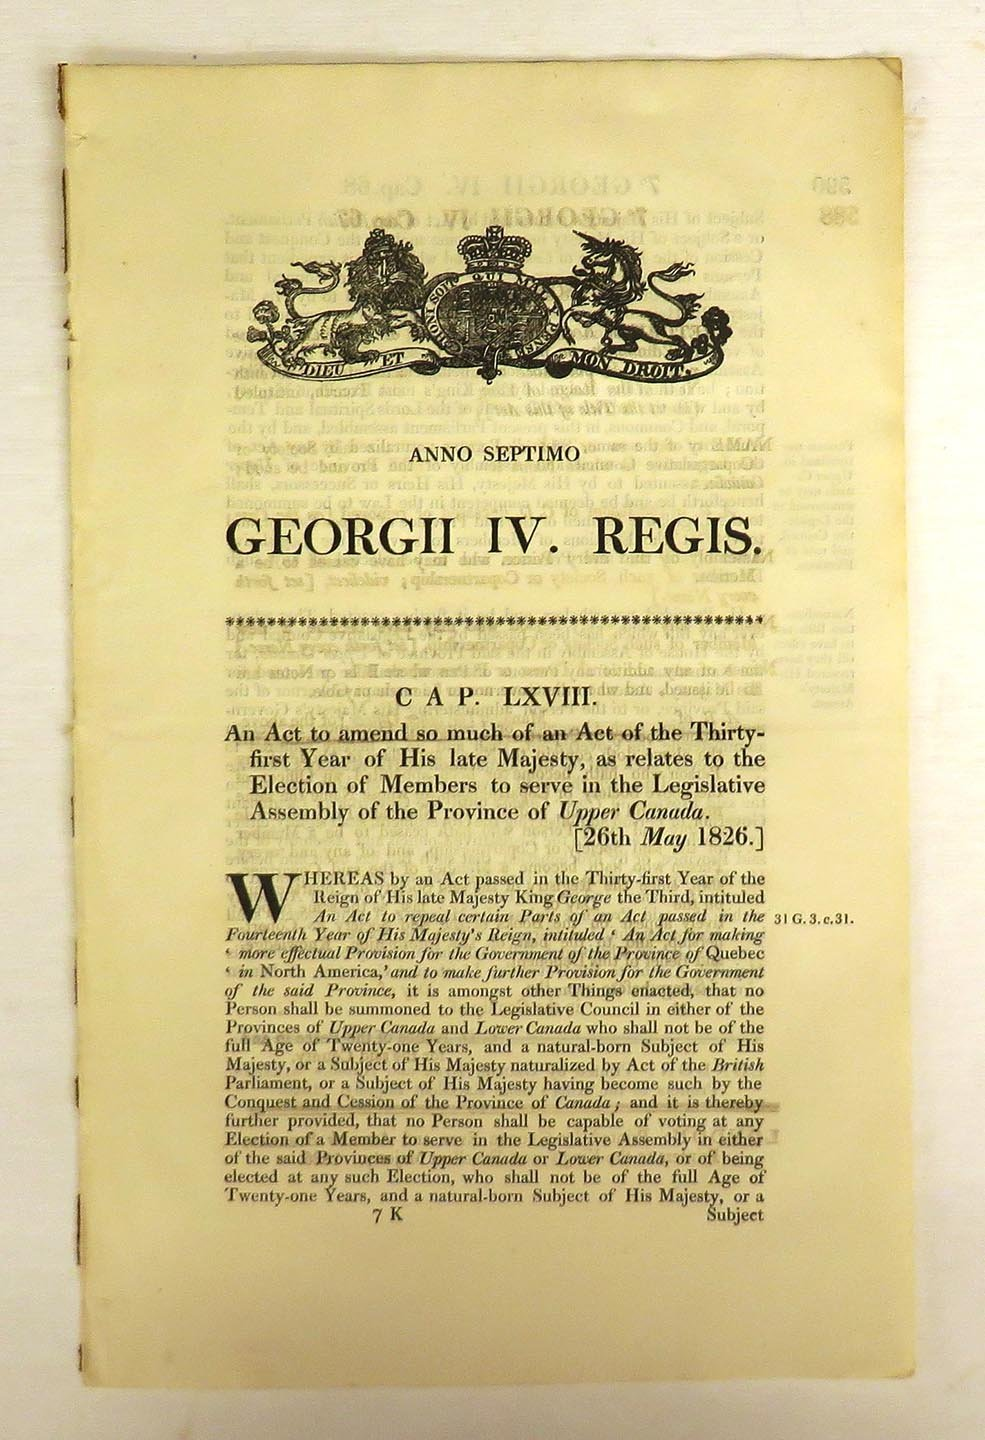 An Act to amend so much of an Act of the thirty-first Year of His late Majesty, as relates to the Electionof Members to serve in the Legislative Assembly of the Province of Upper Canada